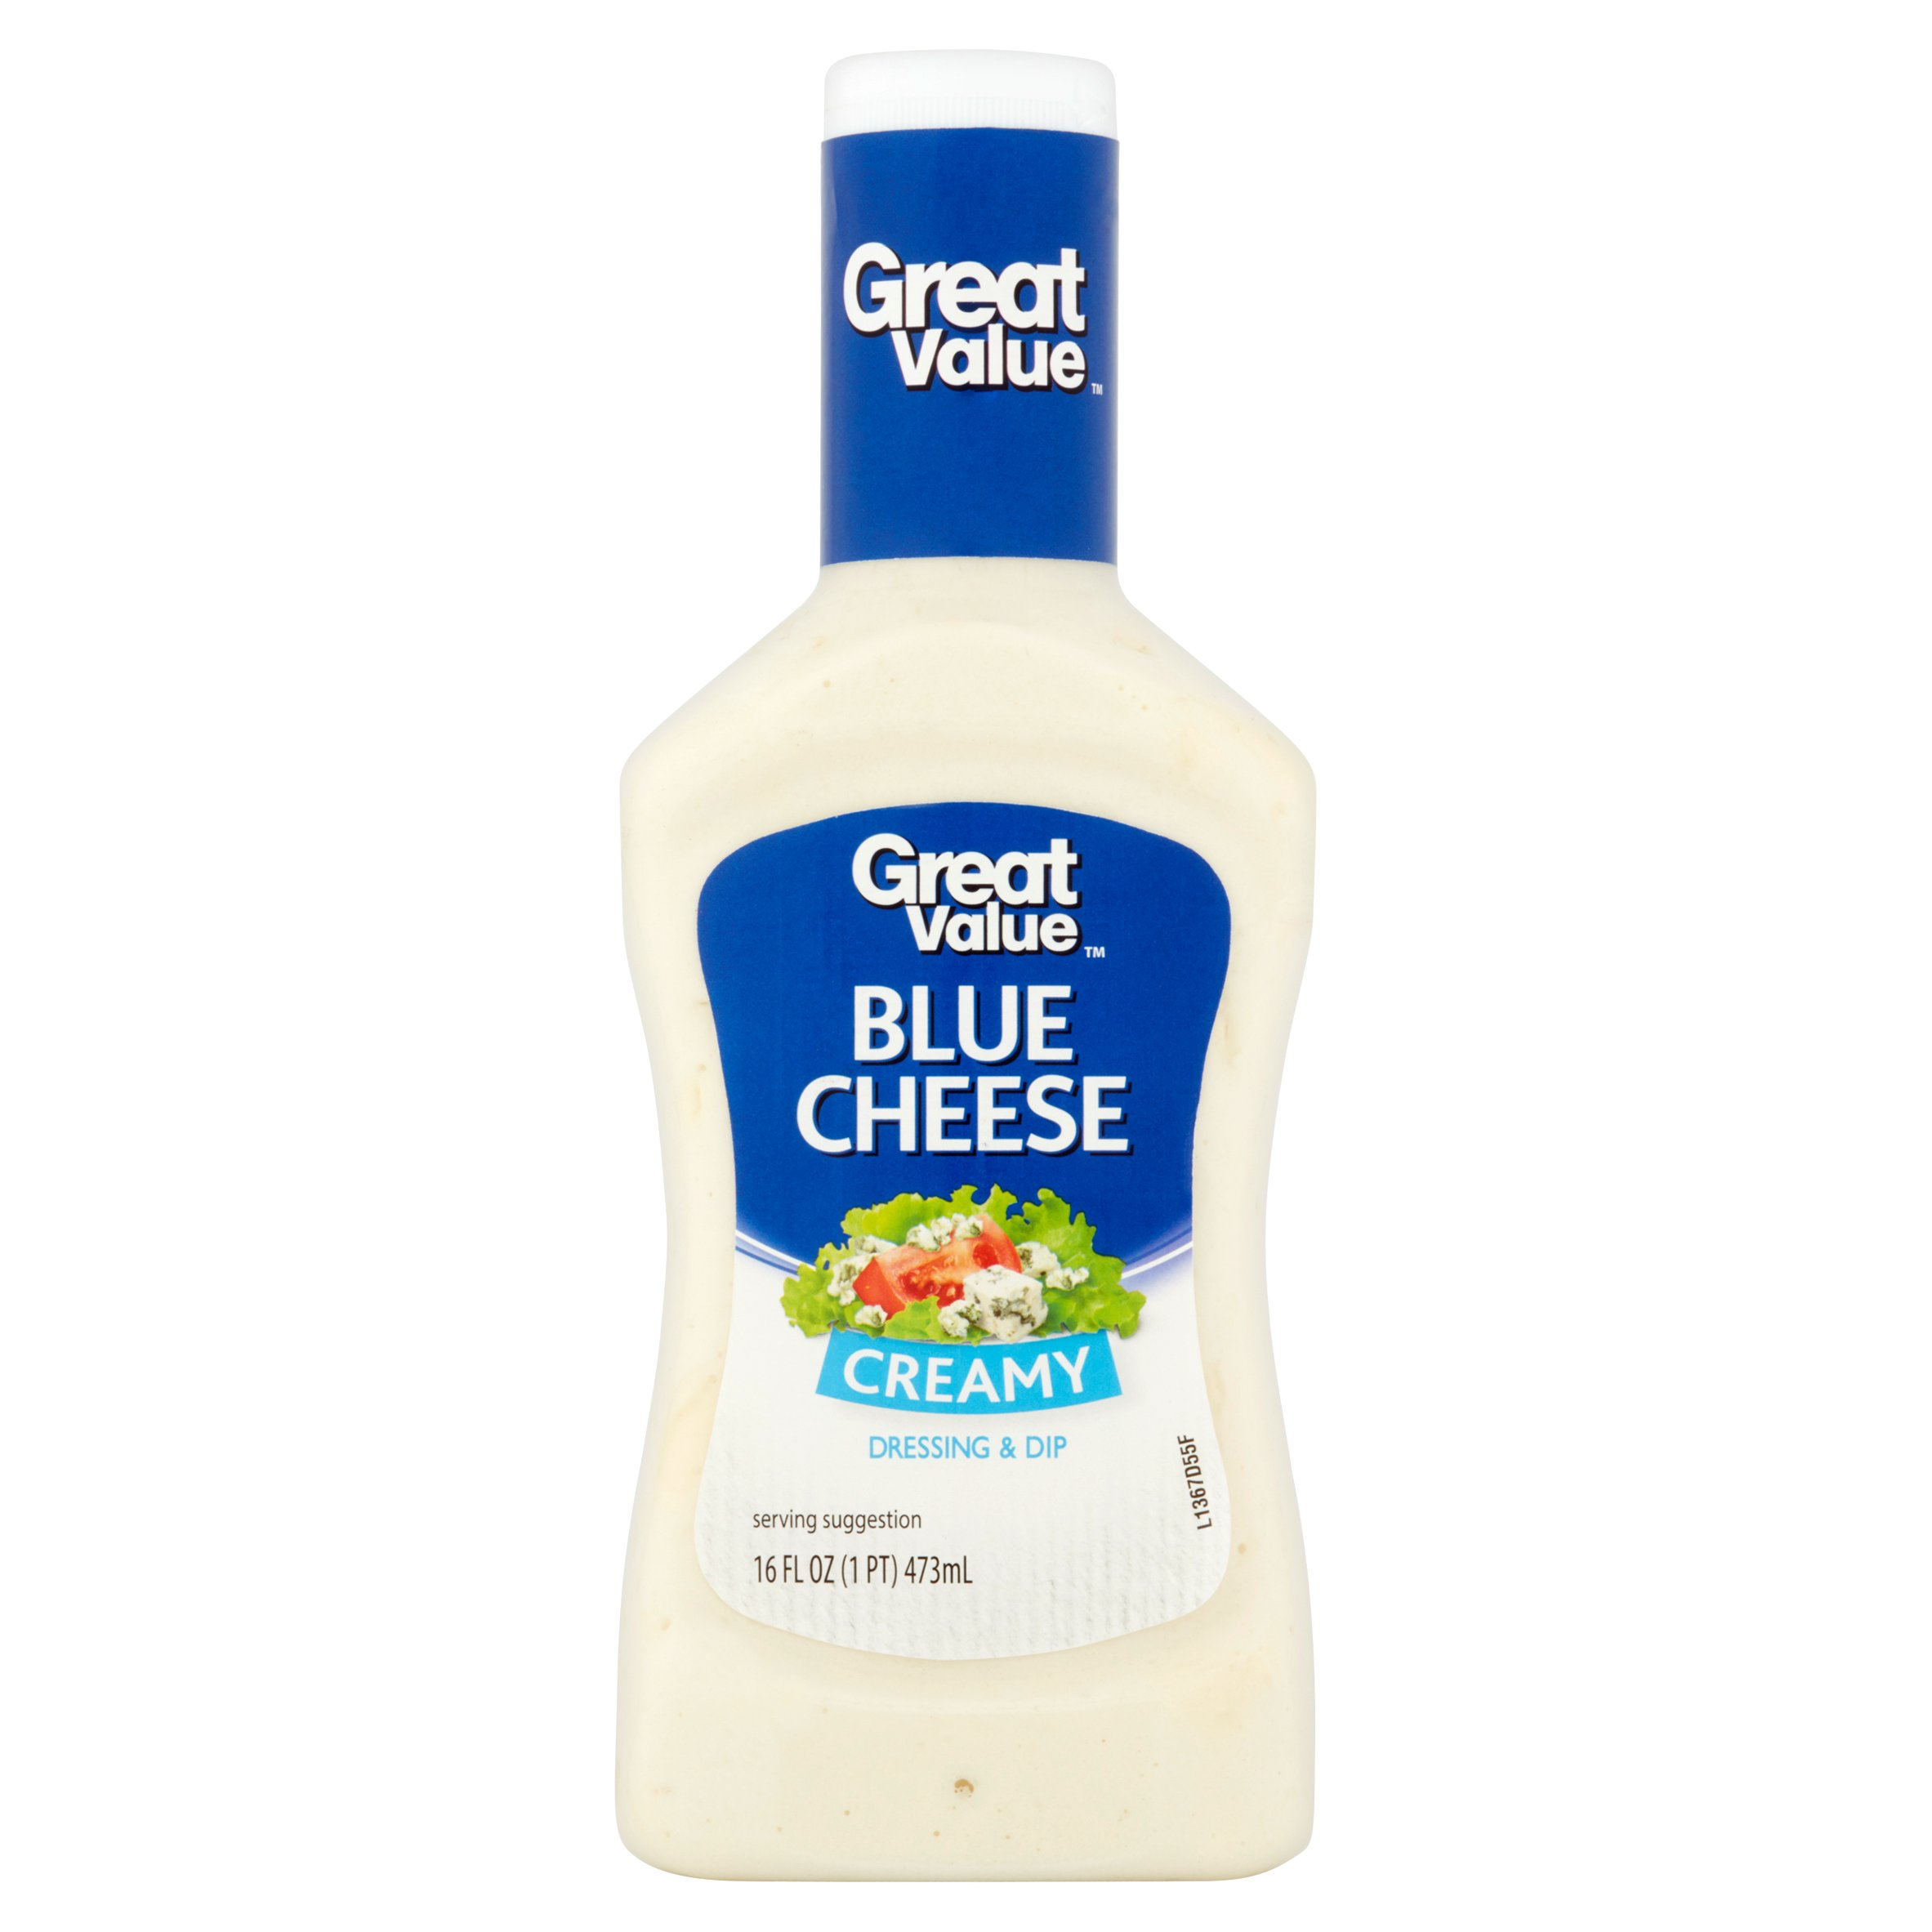 Great Value Creamy Blue Cheese Dressing & Dip, 16 fl oz by Wal-Mart Stores, Inc.